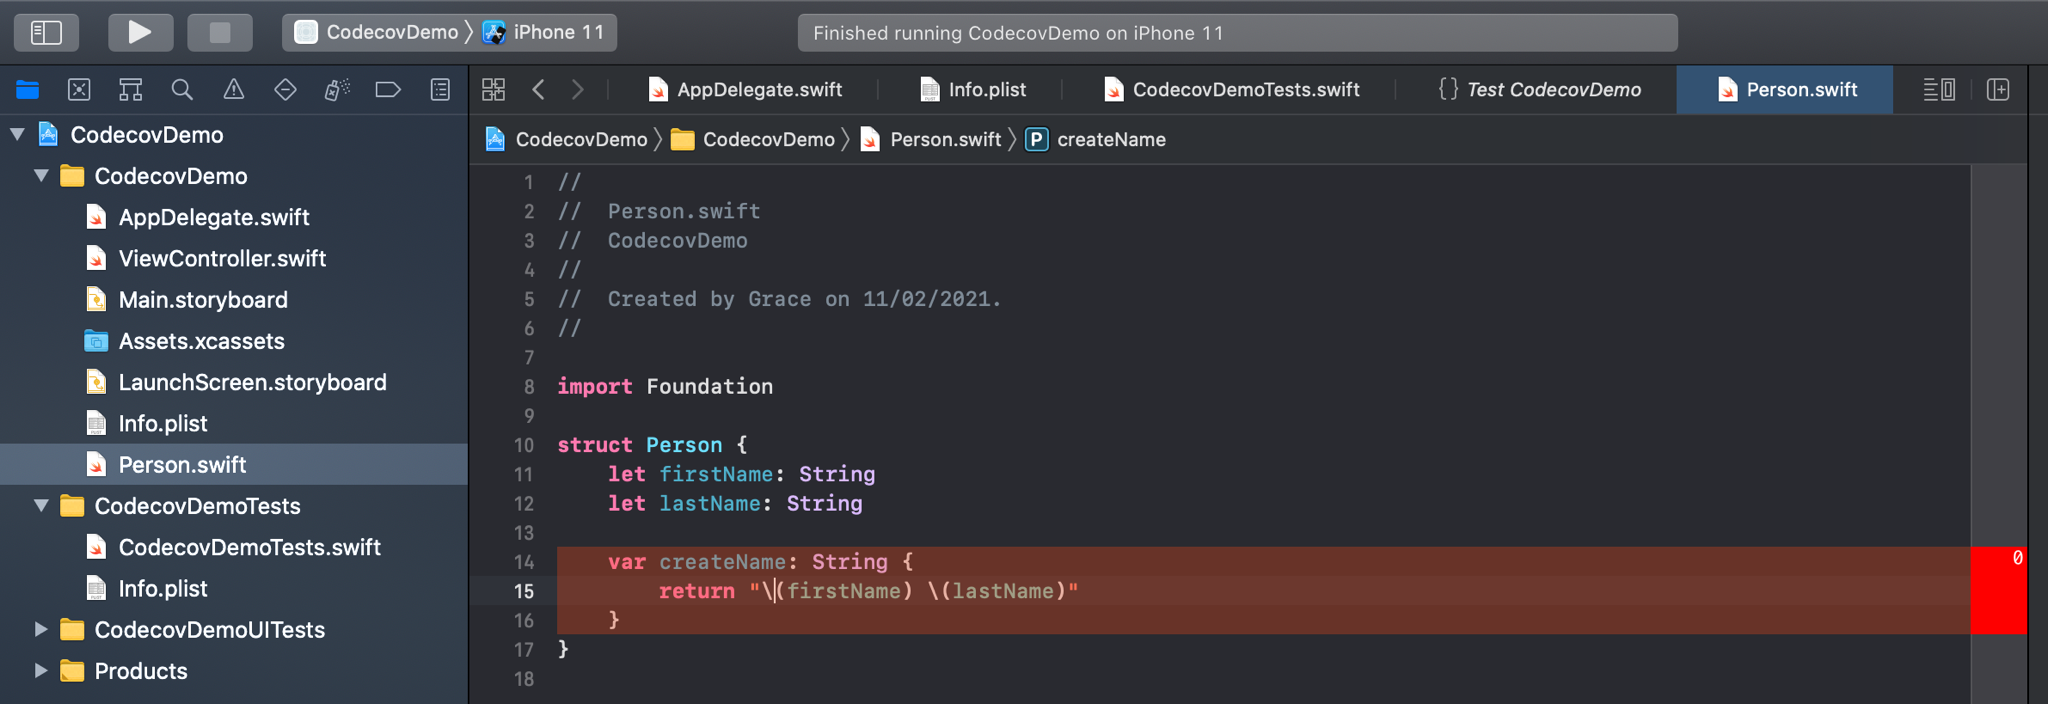 Viewing test coverage in Xcode